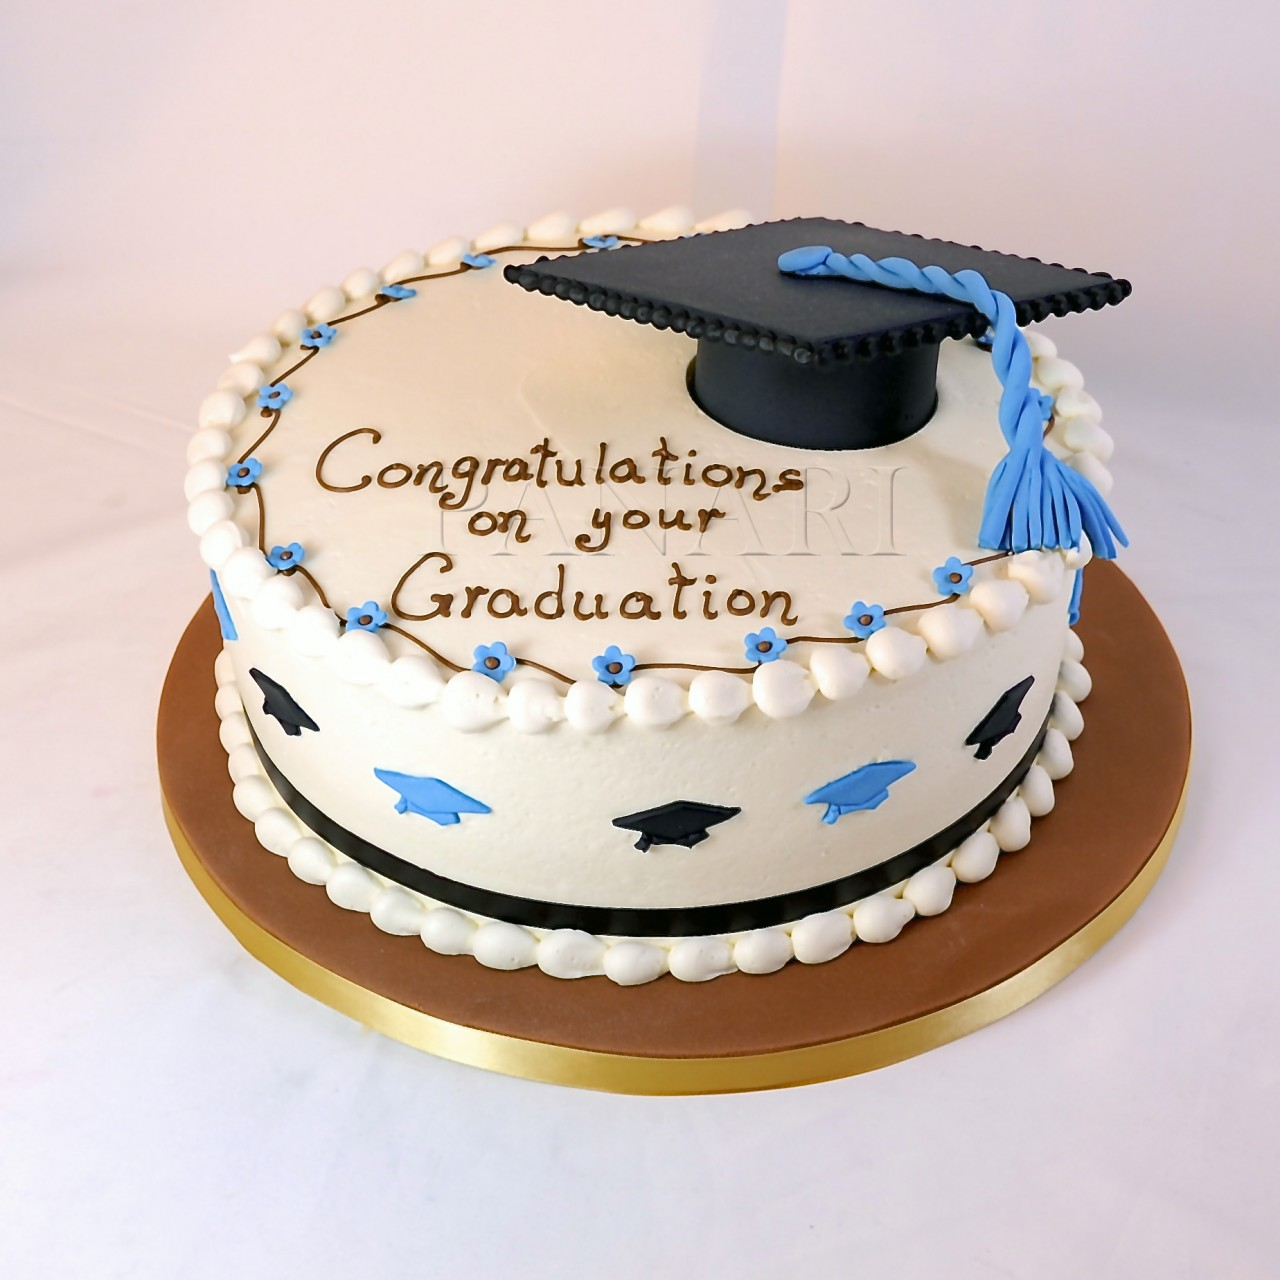 Images Of Graduation Cake : 10 High School Graduation Cake Design CAKE DESIGN AND ...